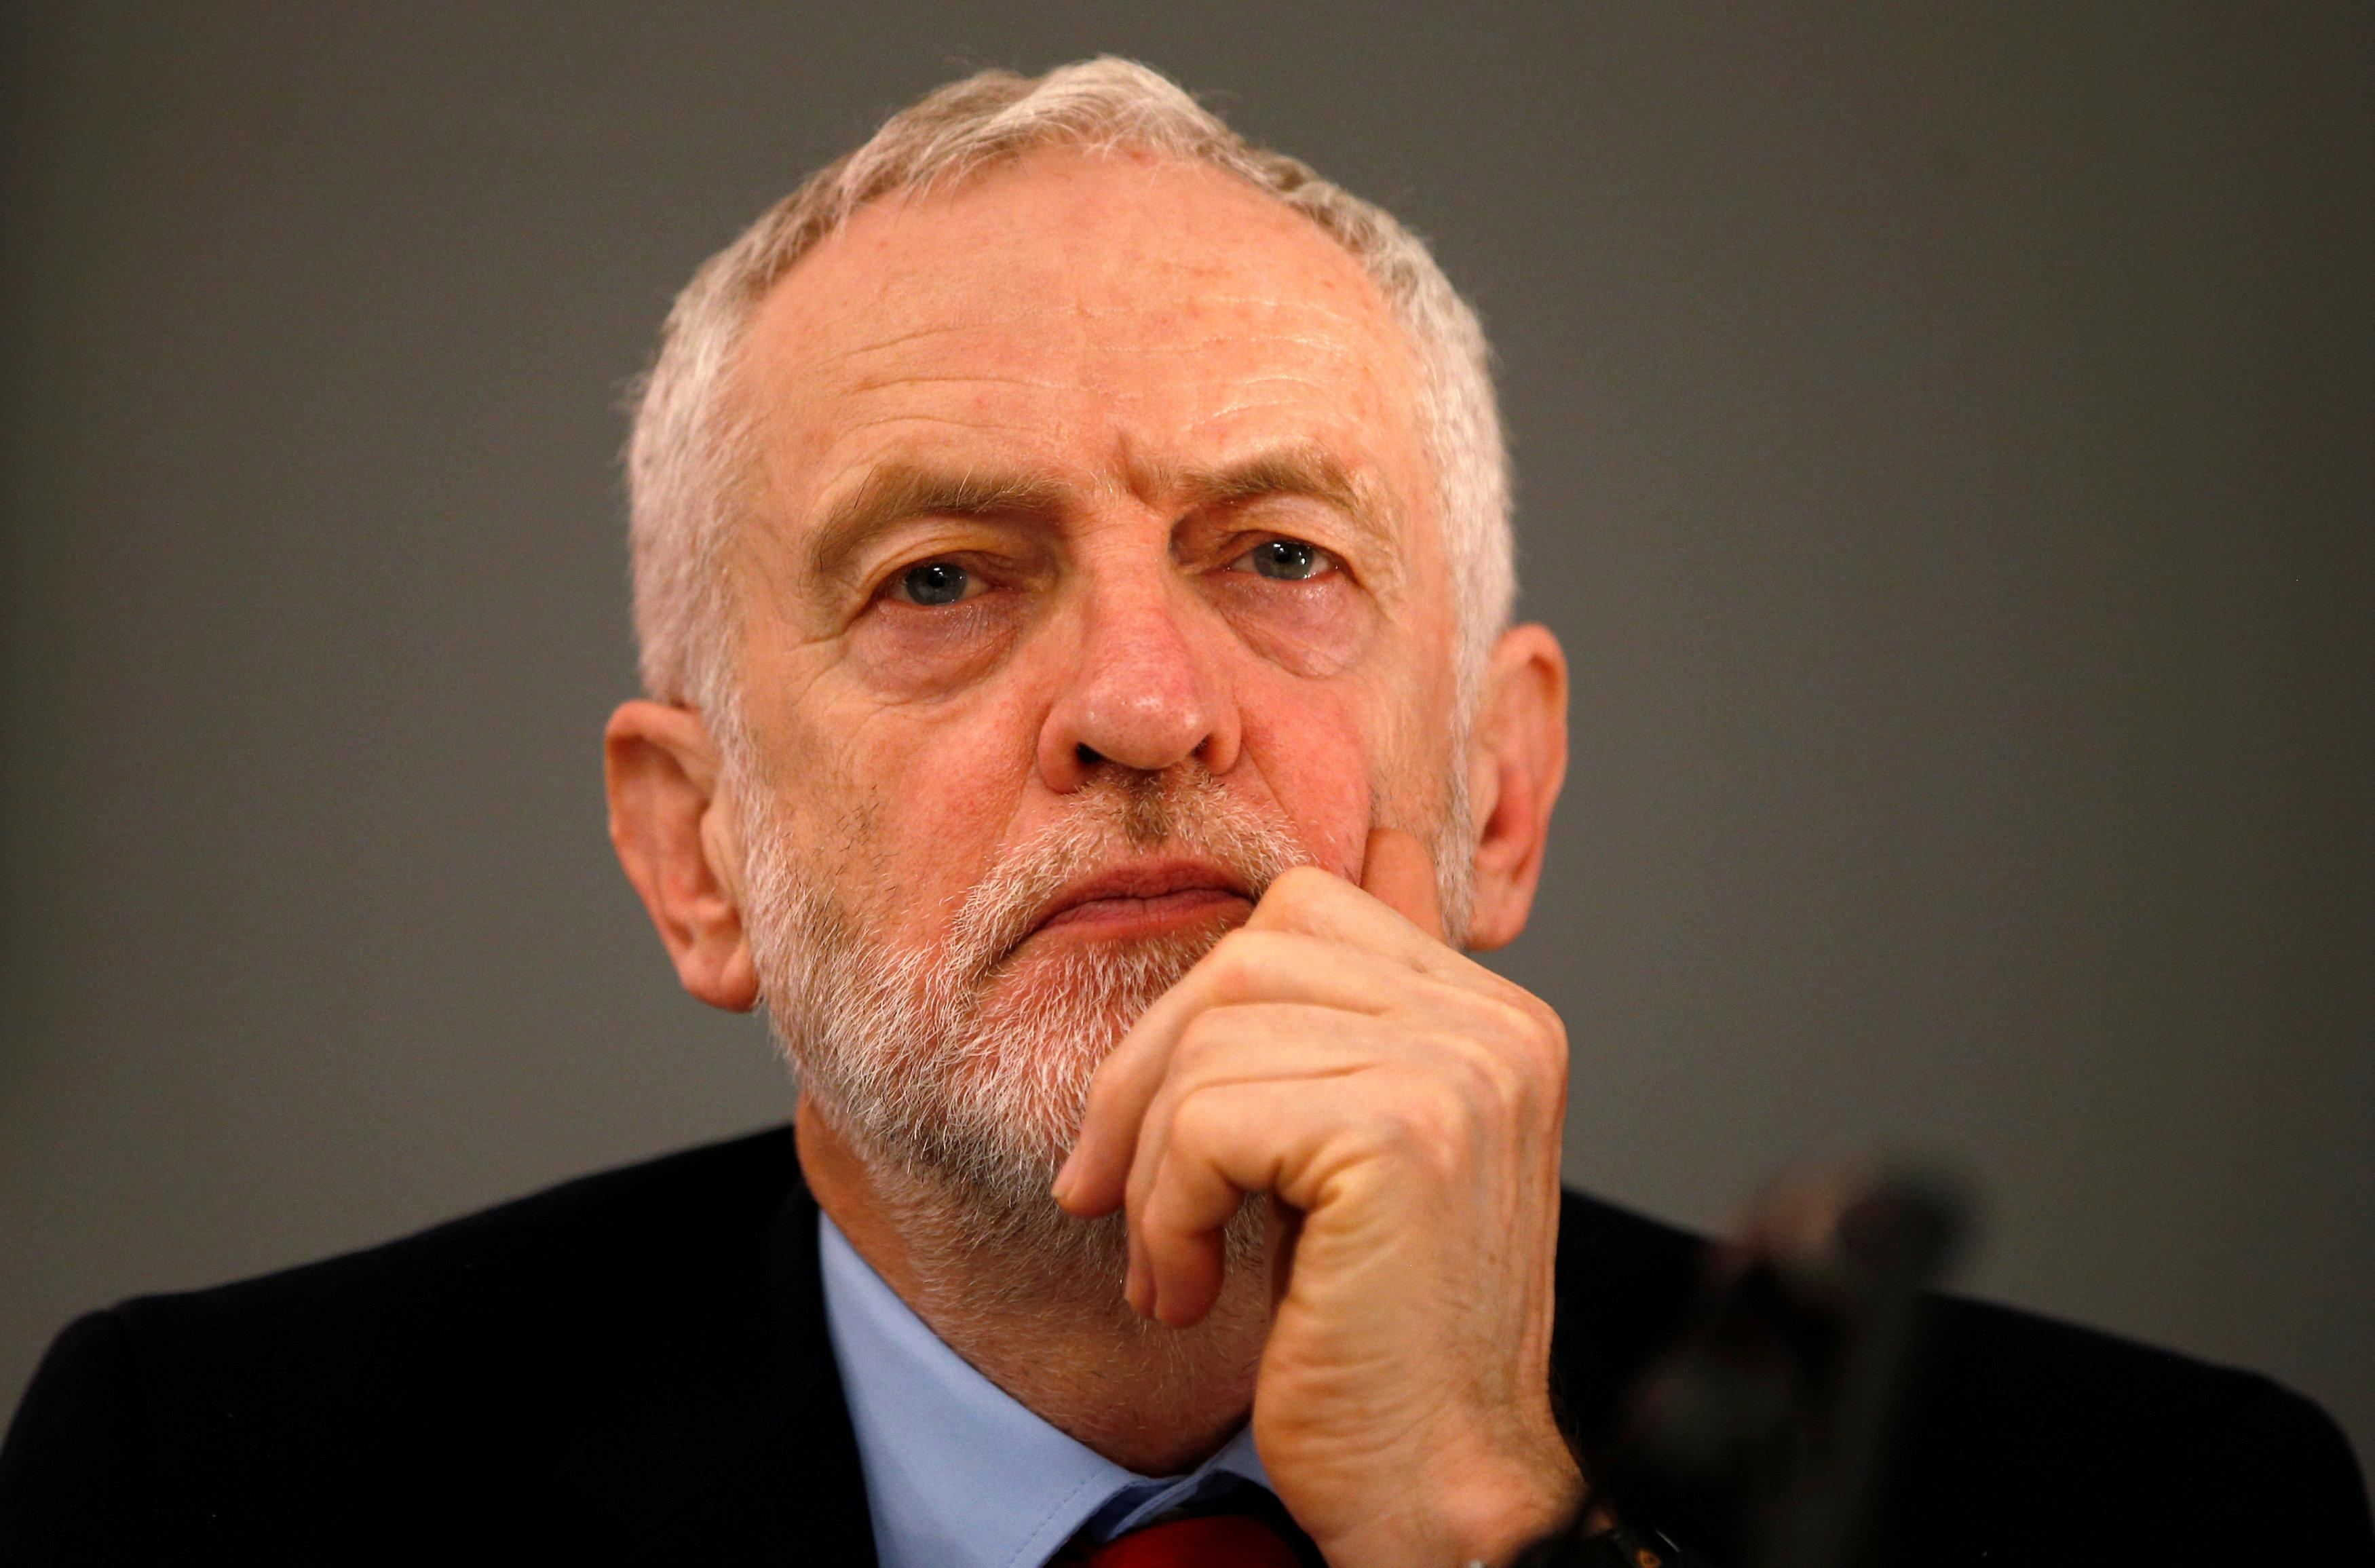 Jeremy Corbyn blasted by Jewish leaders for 'leading' Labour into 'a home for anti-Semites' – and for punishing those who speak out against it